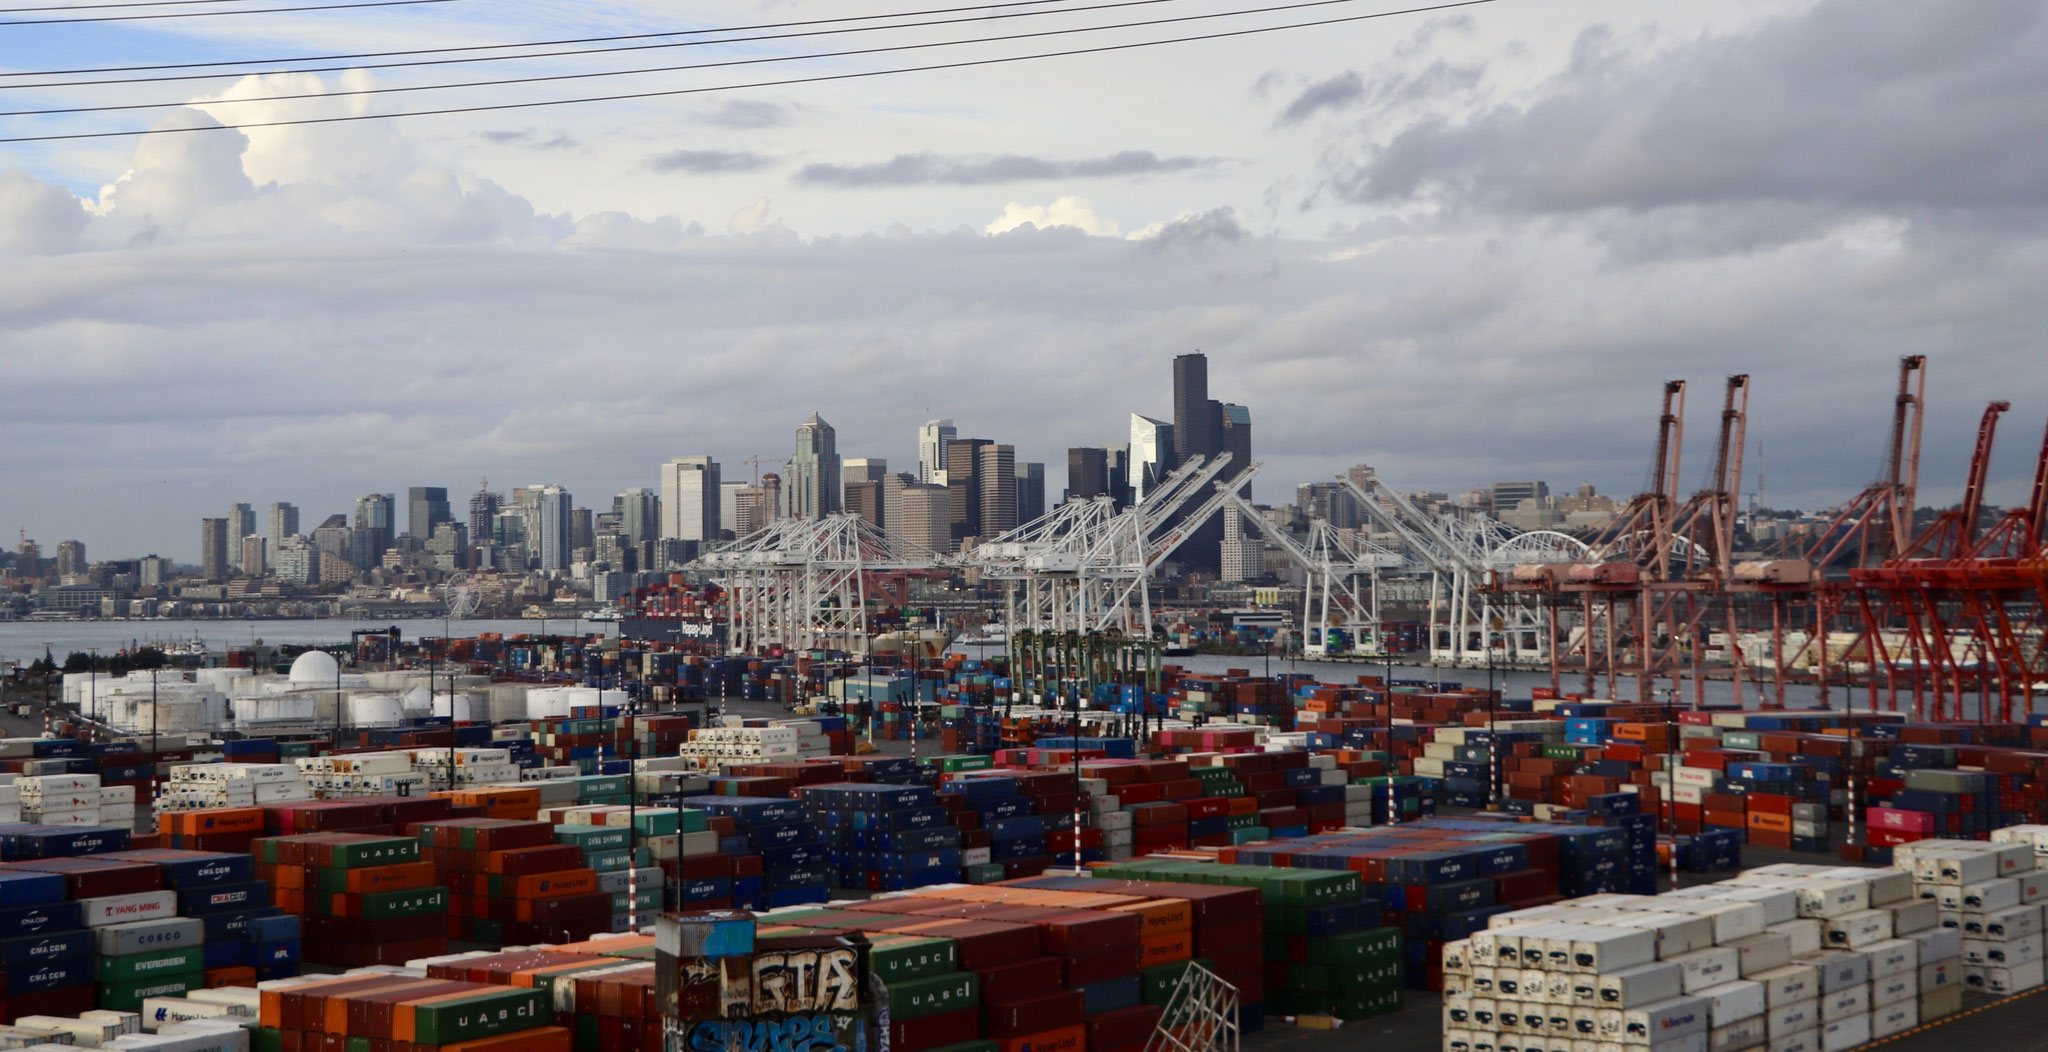 Seattle Freight Harbour